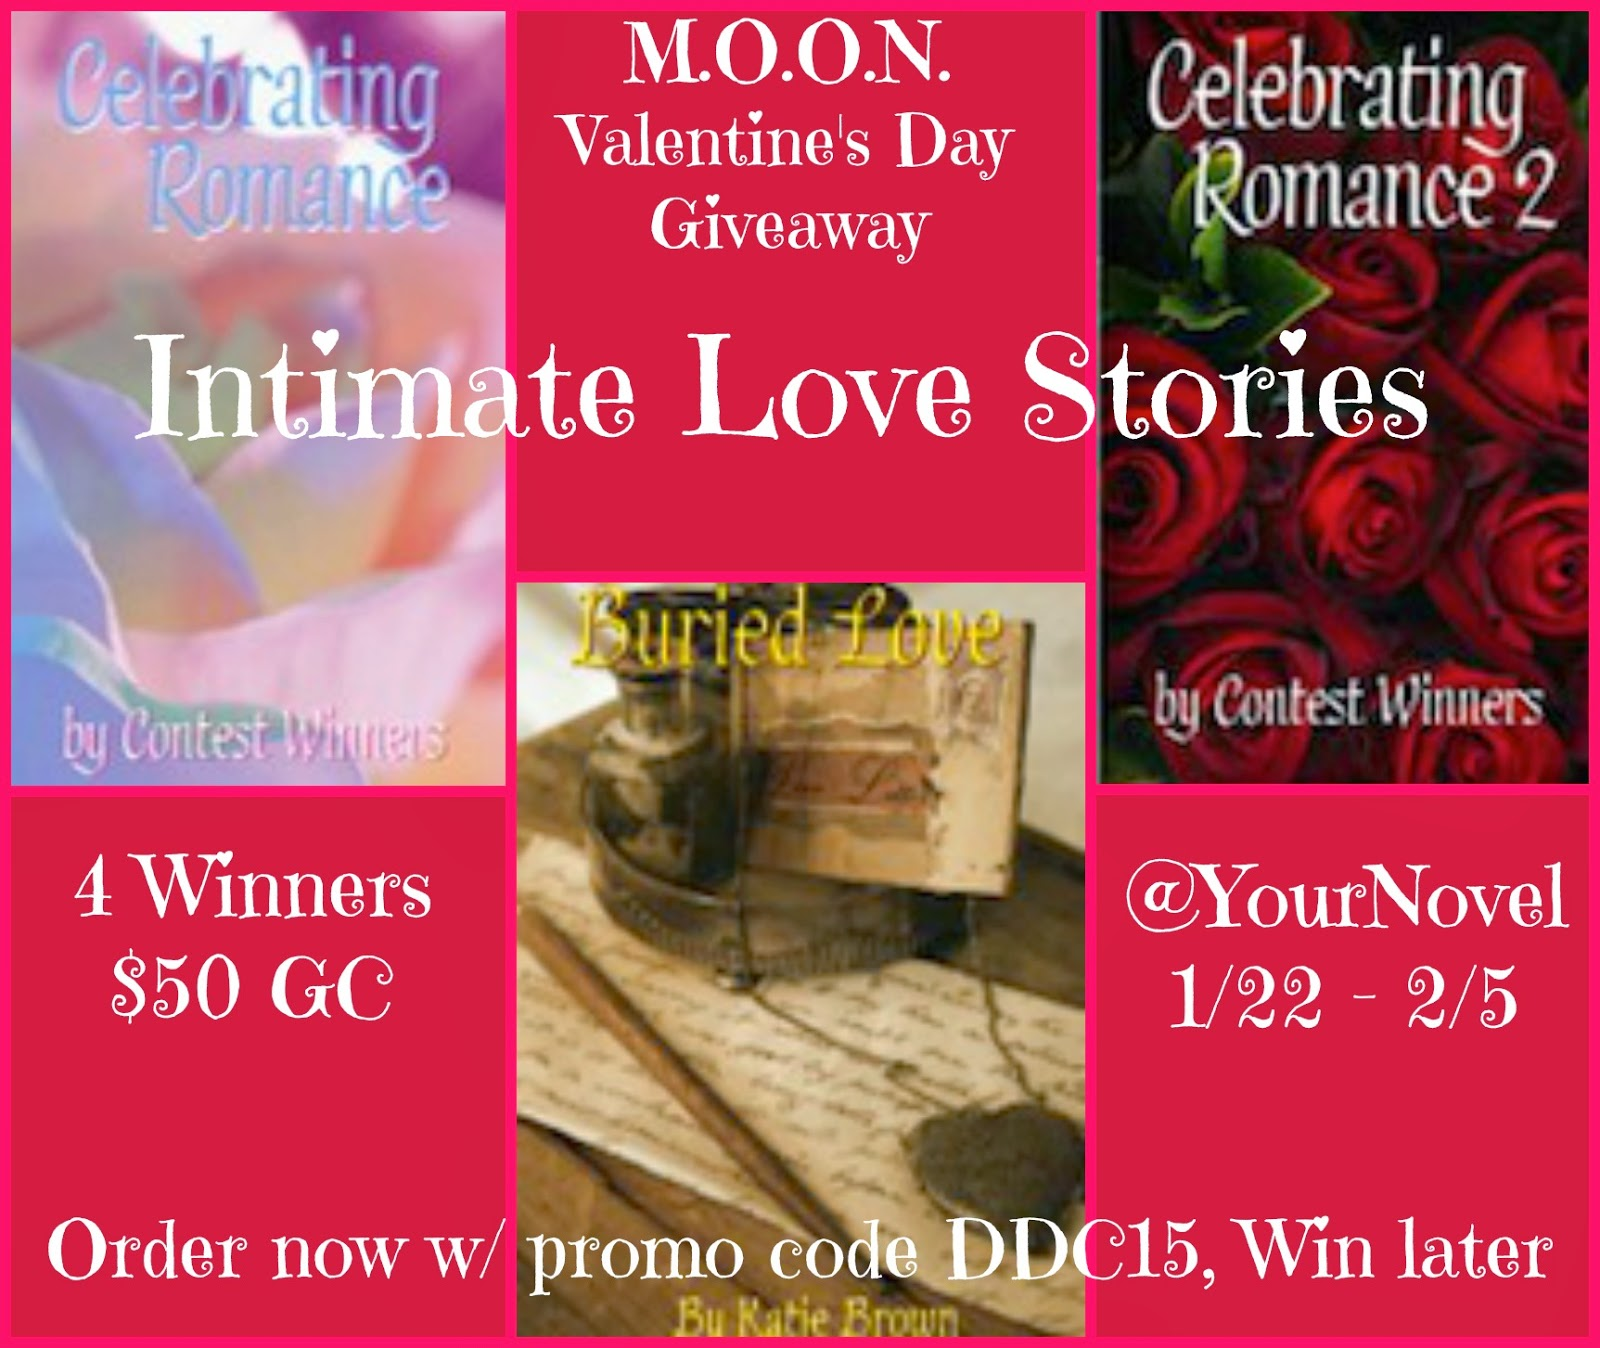 4 Winners! Intimate Love Stories $50 Gift Code Giveaway + A Special Disappearing Discount Through Valentine's Day. Don't miss It!